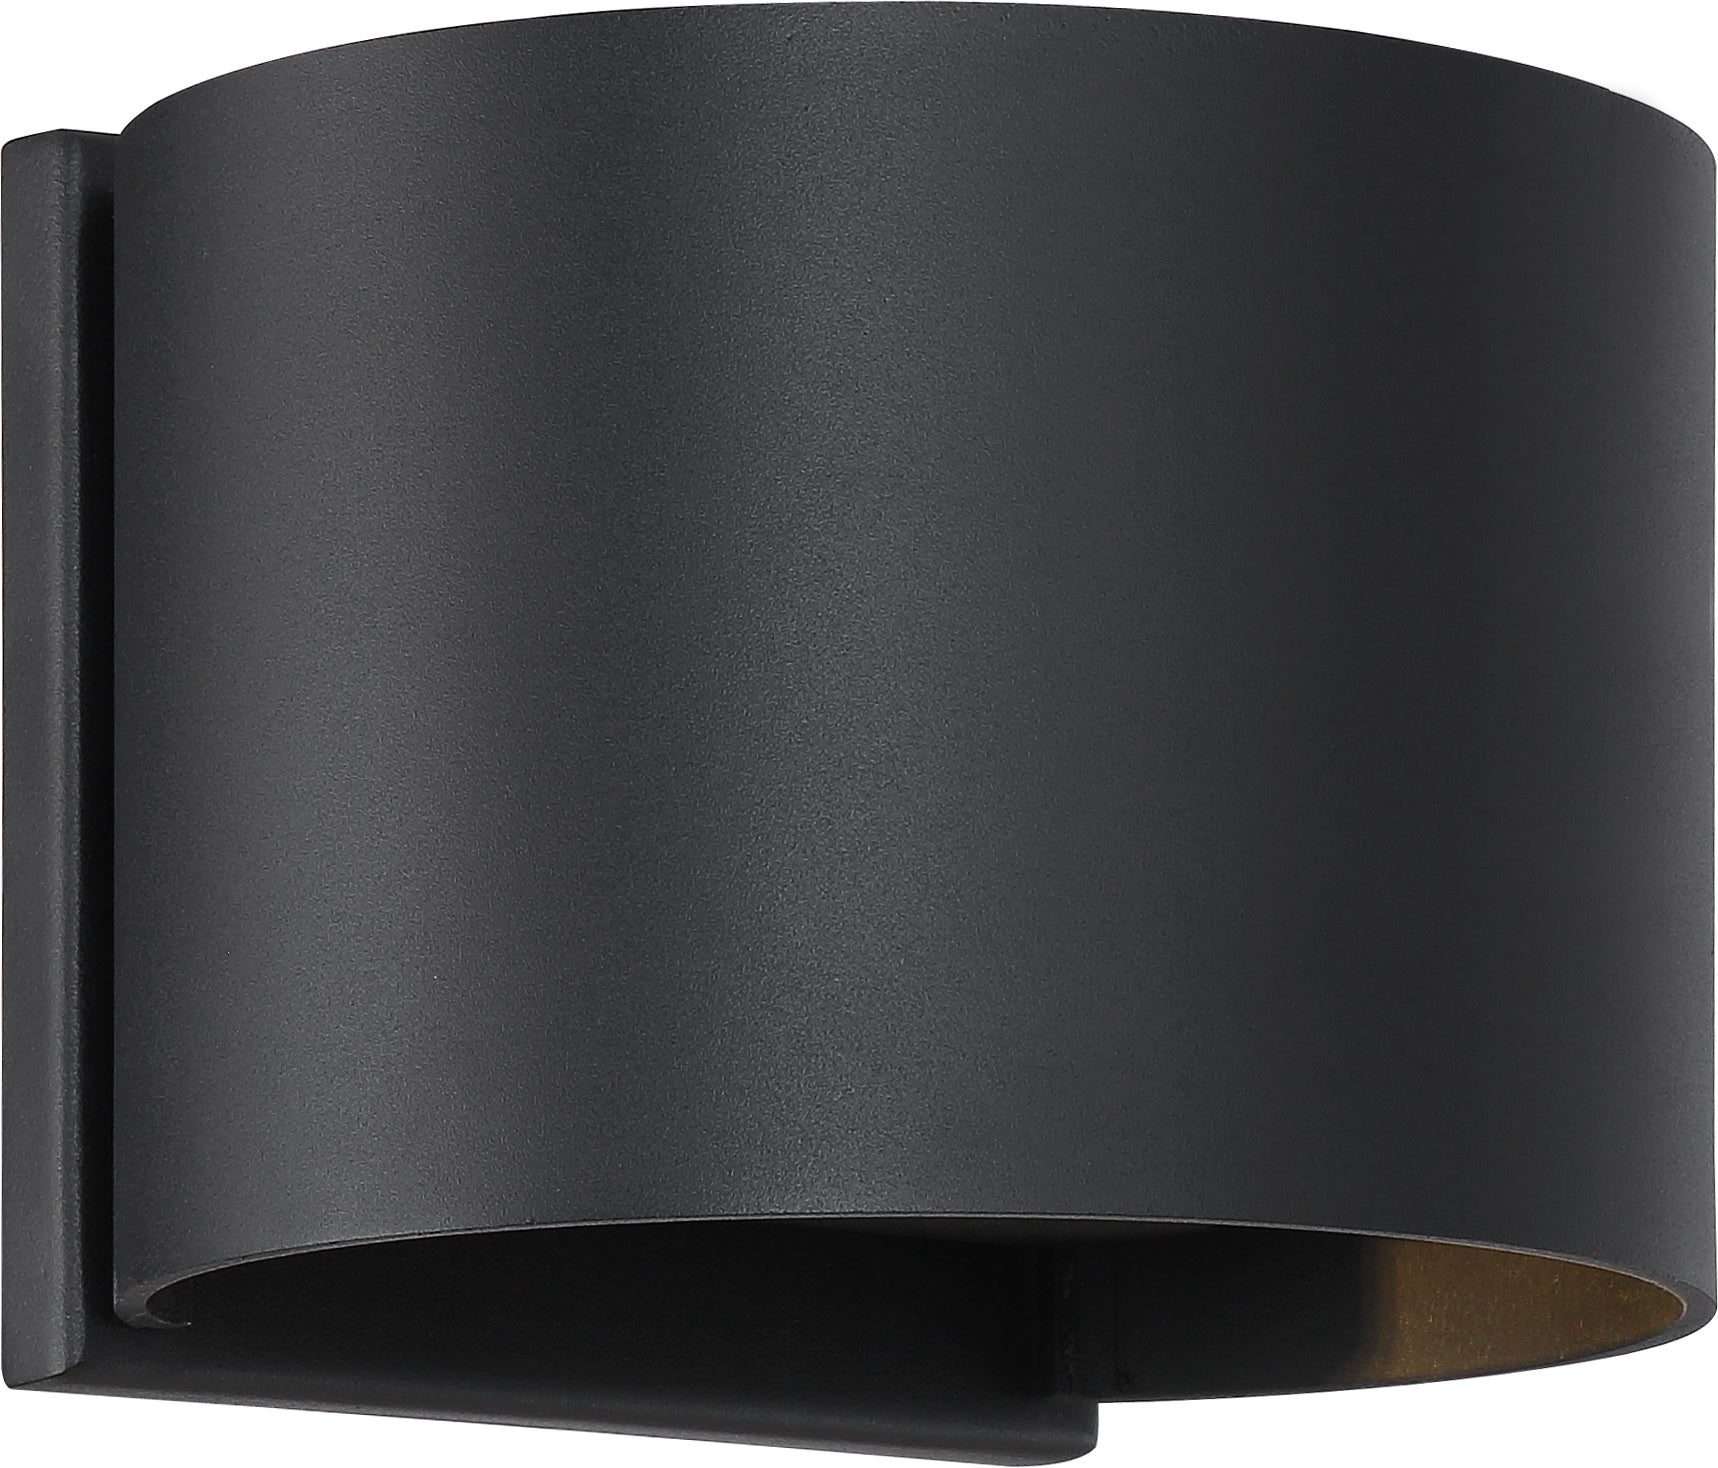 Nuvo Lightgate 1-Light 5w LED Wall Round Sconce w/ Black & Clear Ribbed Glass